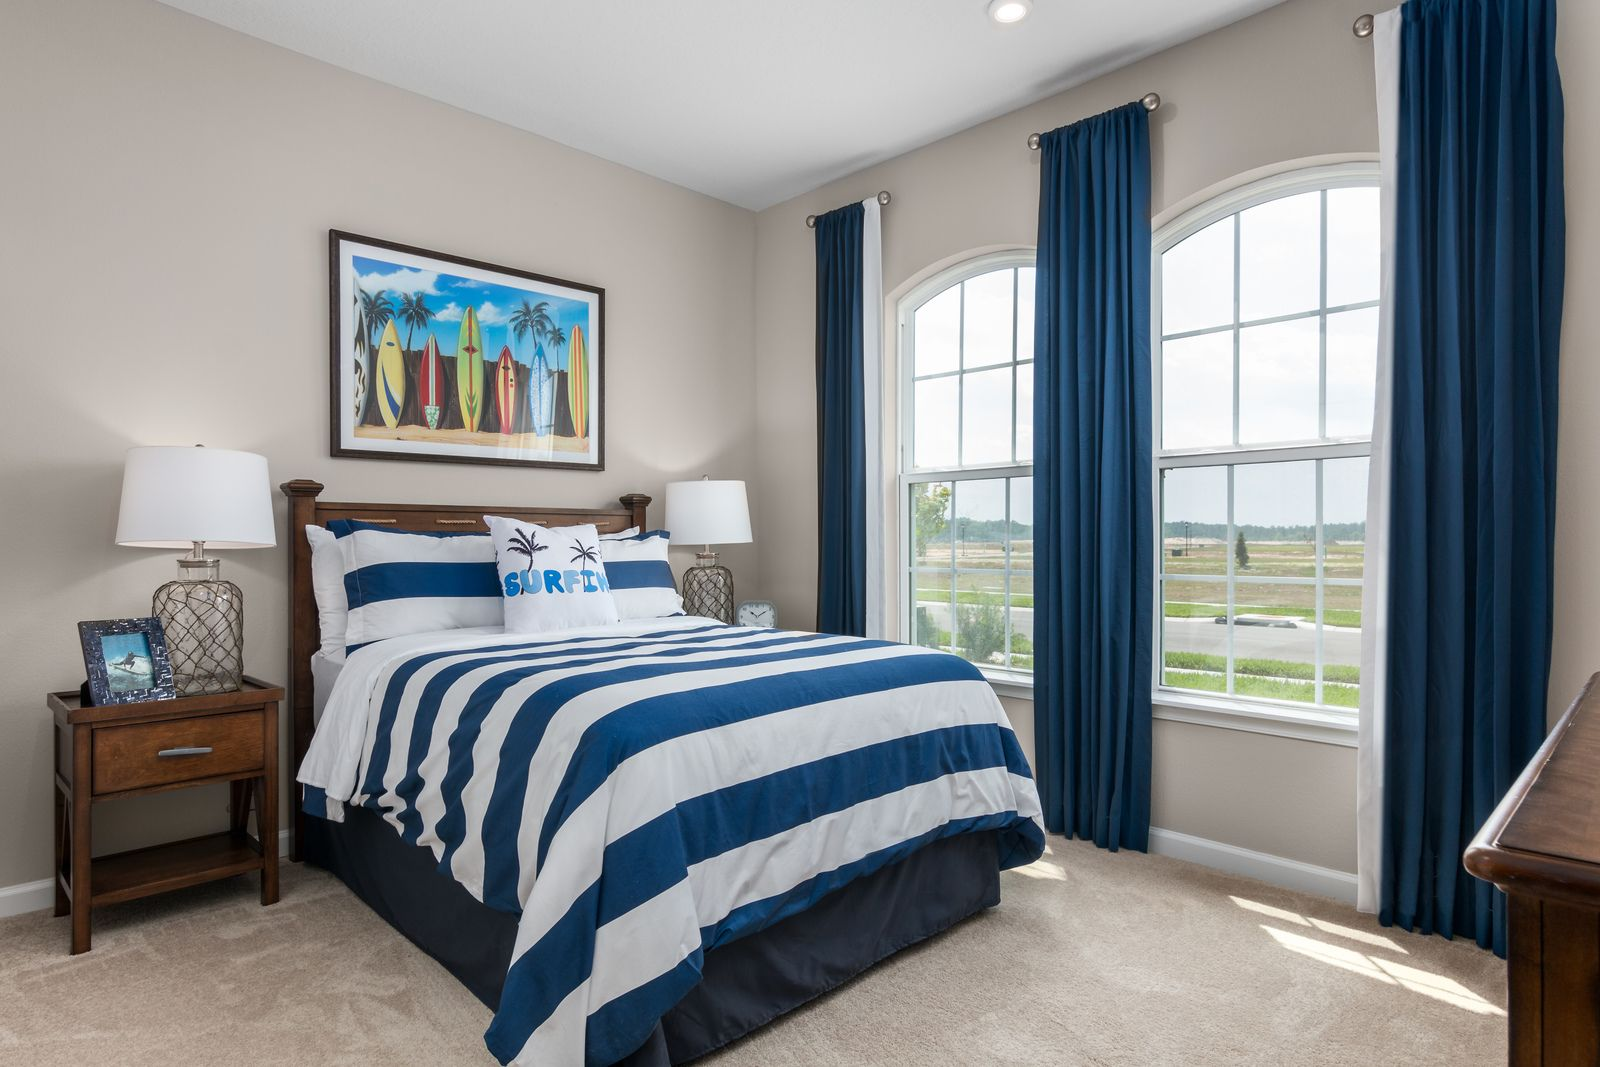 Bedroom featured in the Seagate By Ryan Homes in Tampa-St. Petersburg, FL